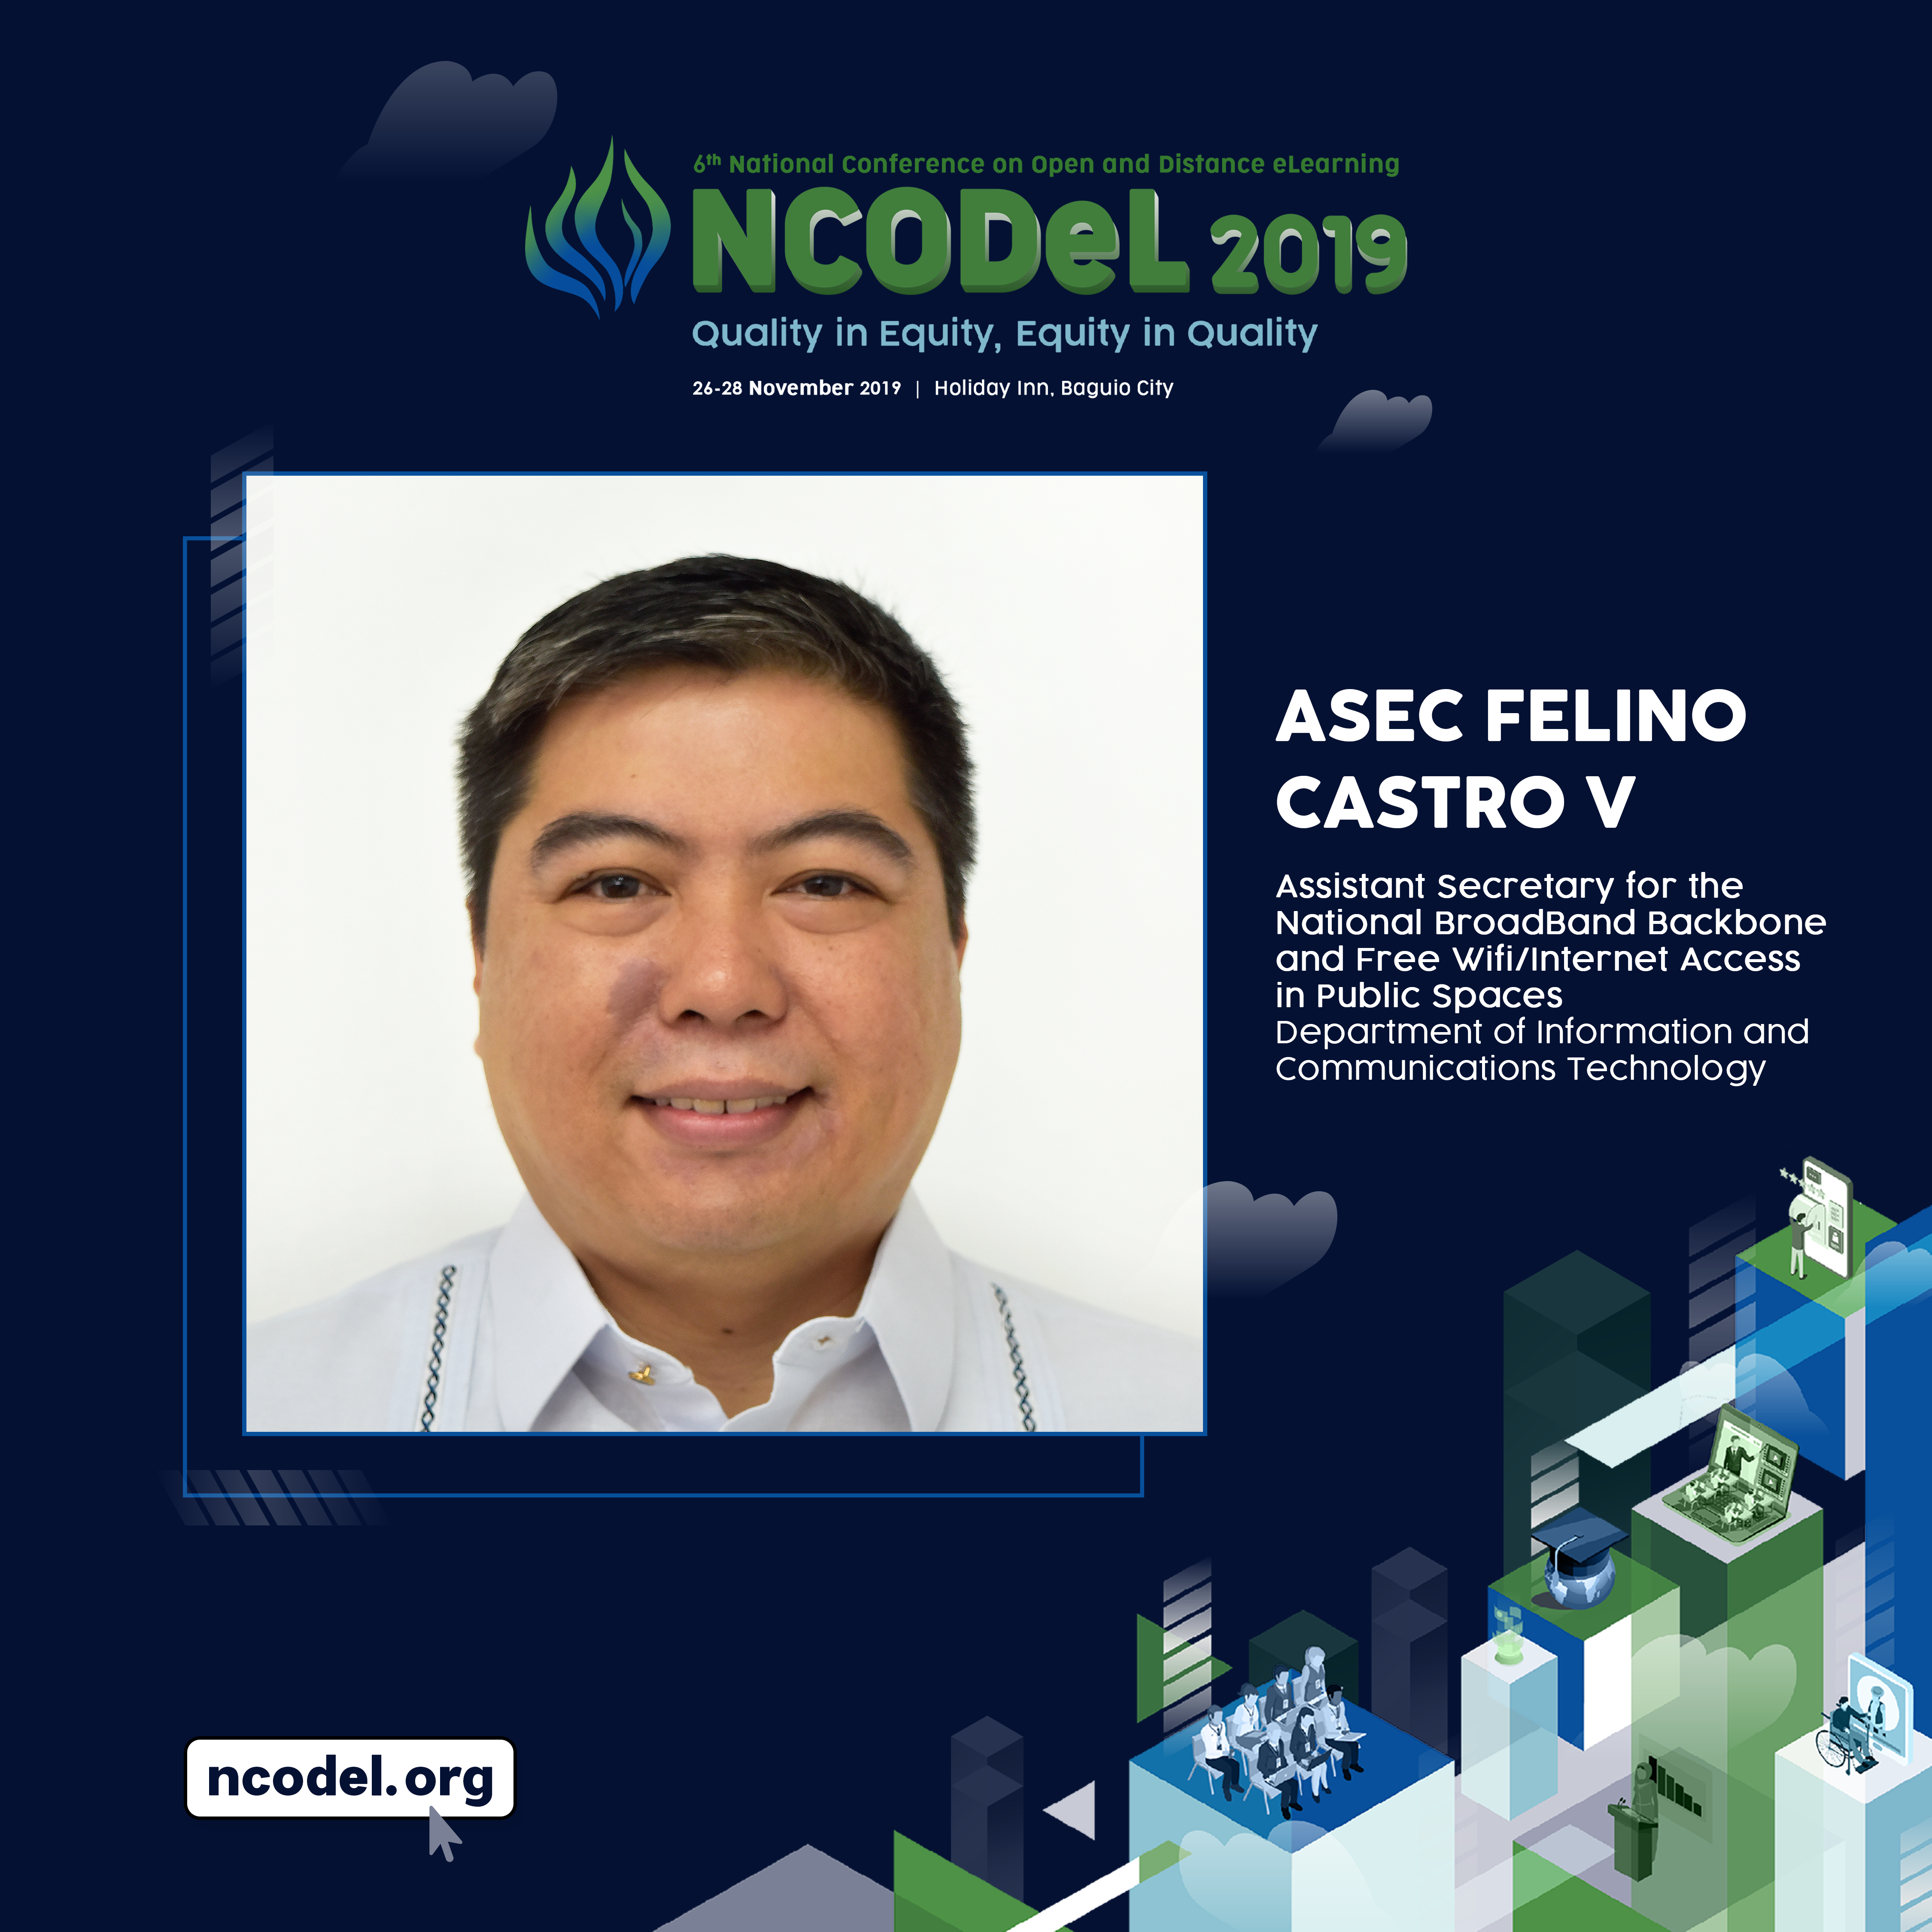 Felino Castro V, Assistant Secretary for the National Broadband Backbone and Free Wifi/Internet Access in Public Spaces of the Department of Information and Communications Technology (DICT) will serve as a Plenary Speaker for the 6th National Conference on Open and Distance eLearning (NCODeL 2019).